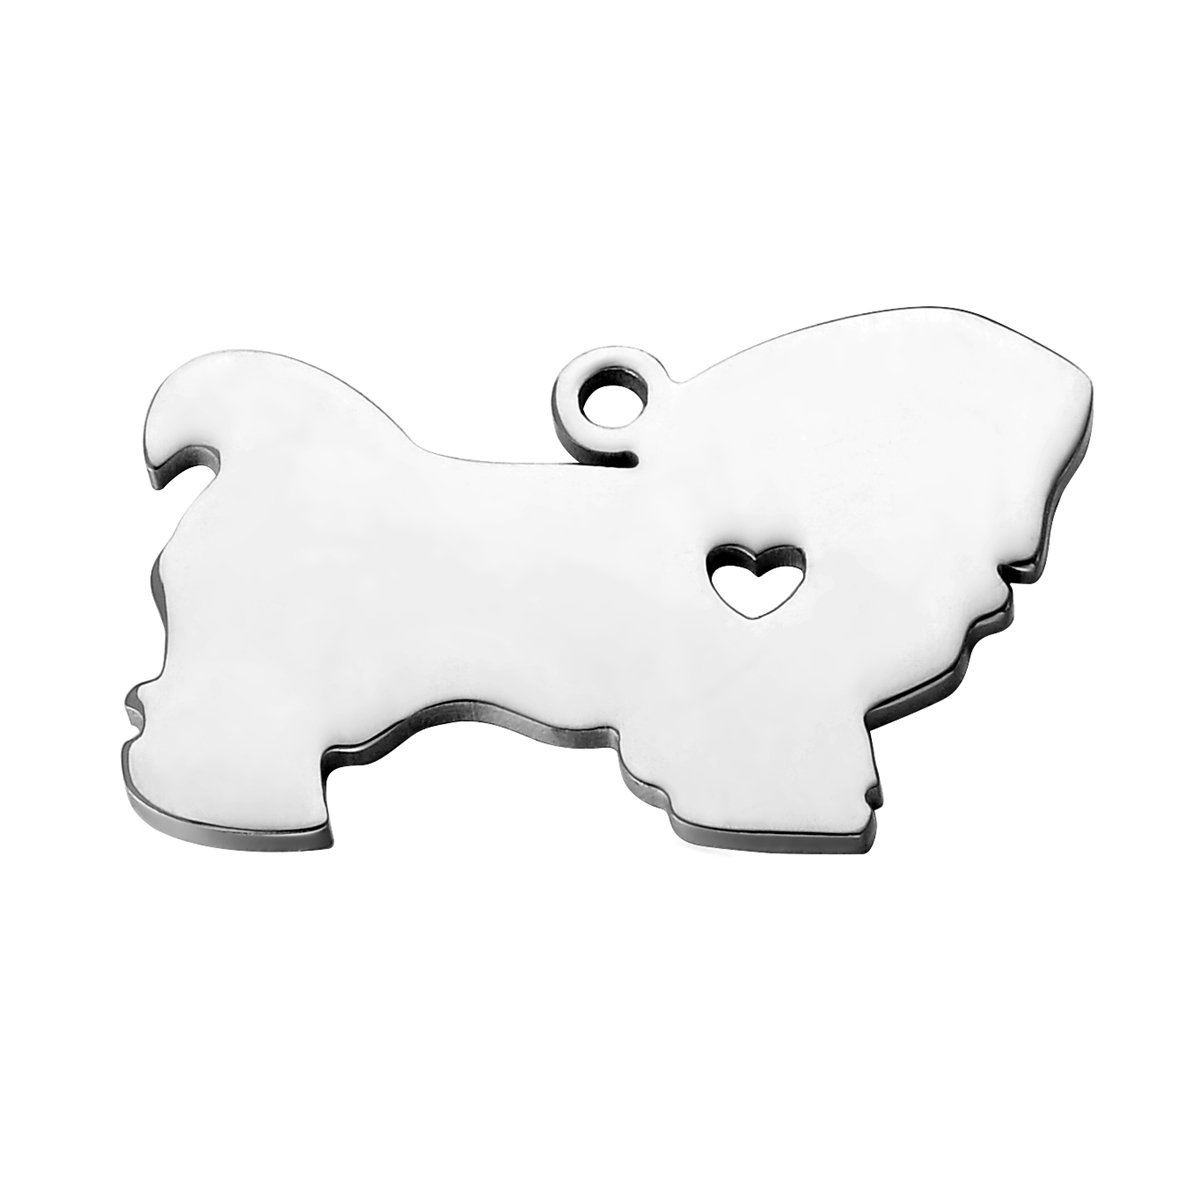 HooAMI Stainless Steel Handcrafted Pet Animal Chihuahua Dog Silhouette Charms Pendant 3×2.9cm